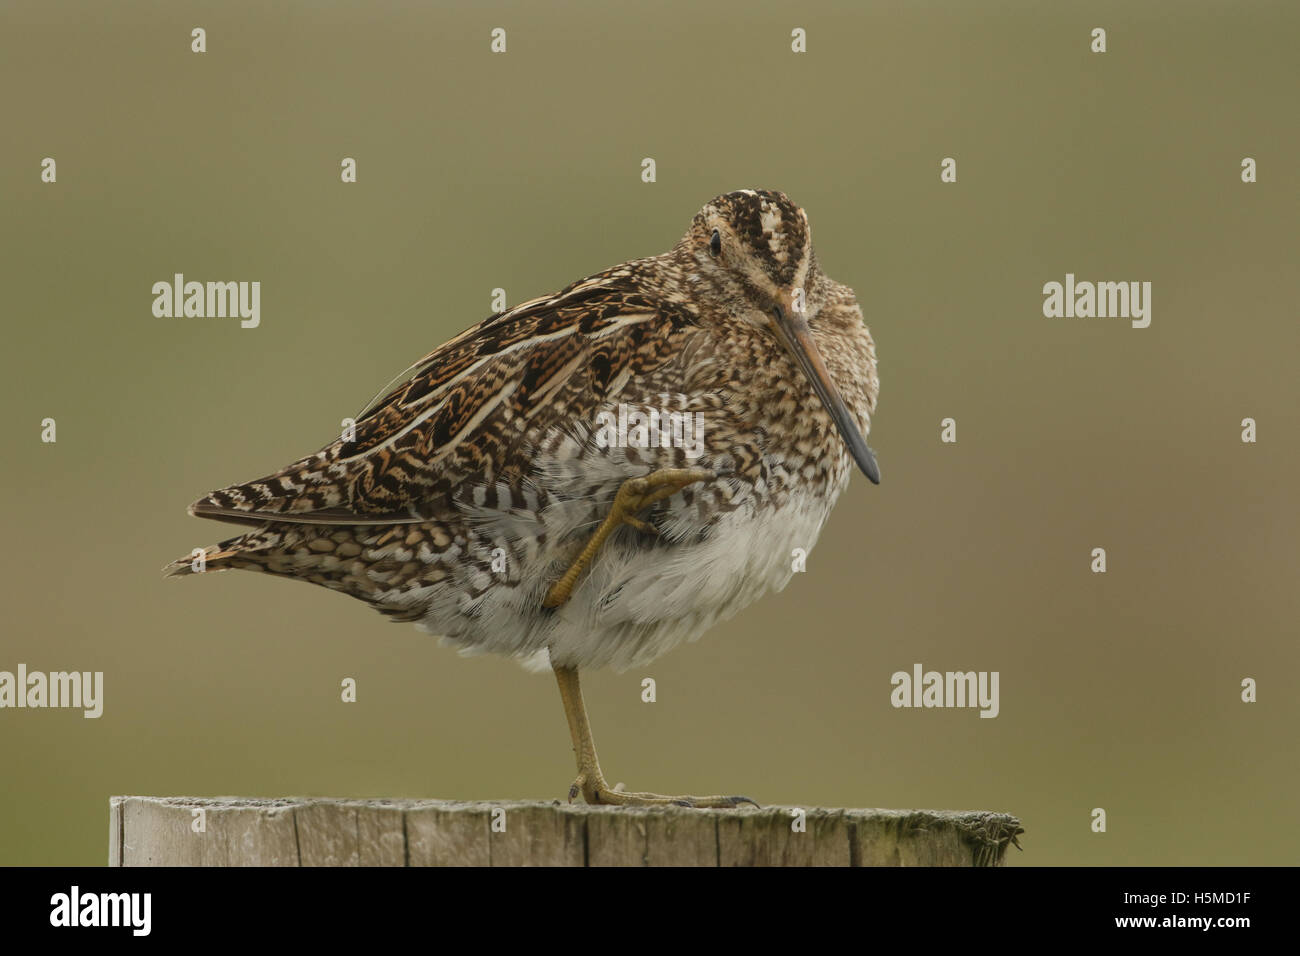 A Snipe (Gallinago gallinago)  perched on a post resting. - Stock Image